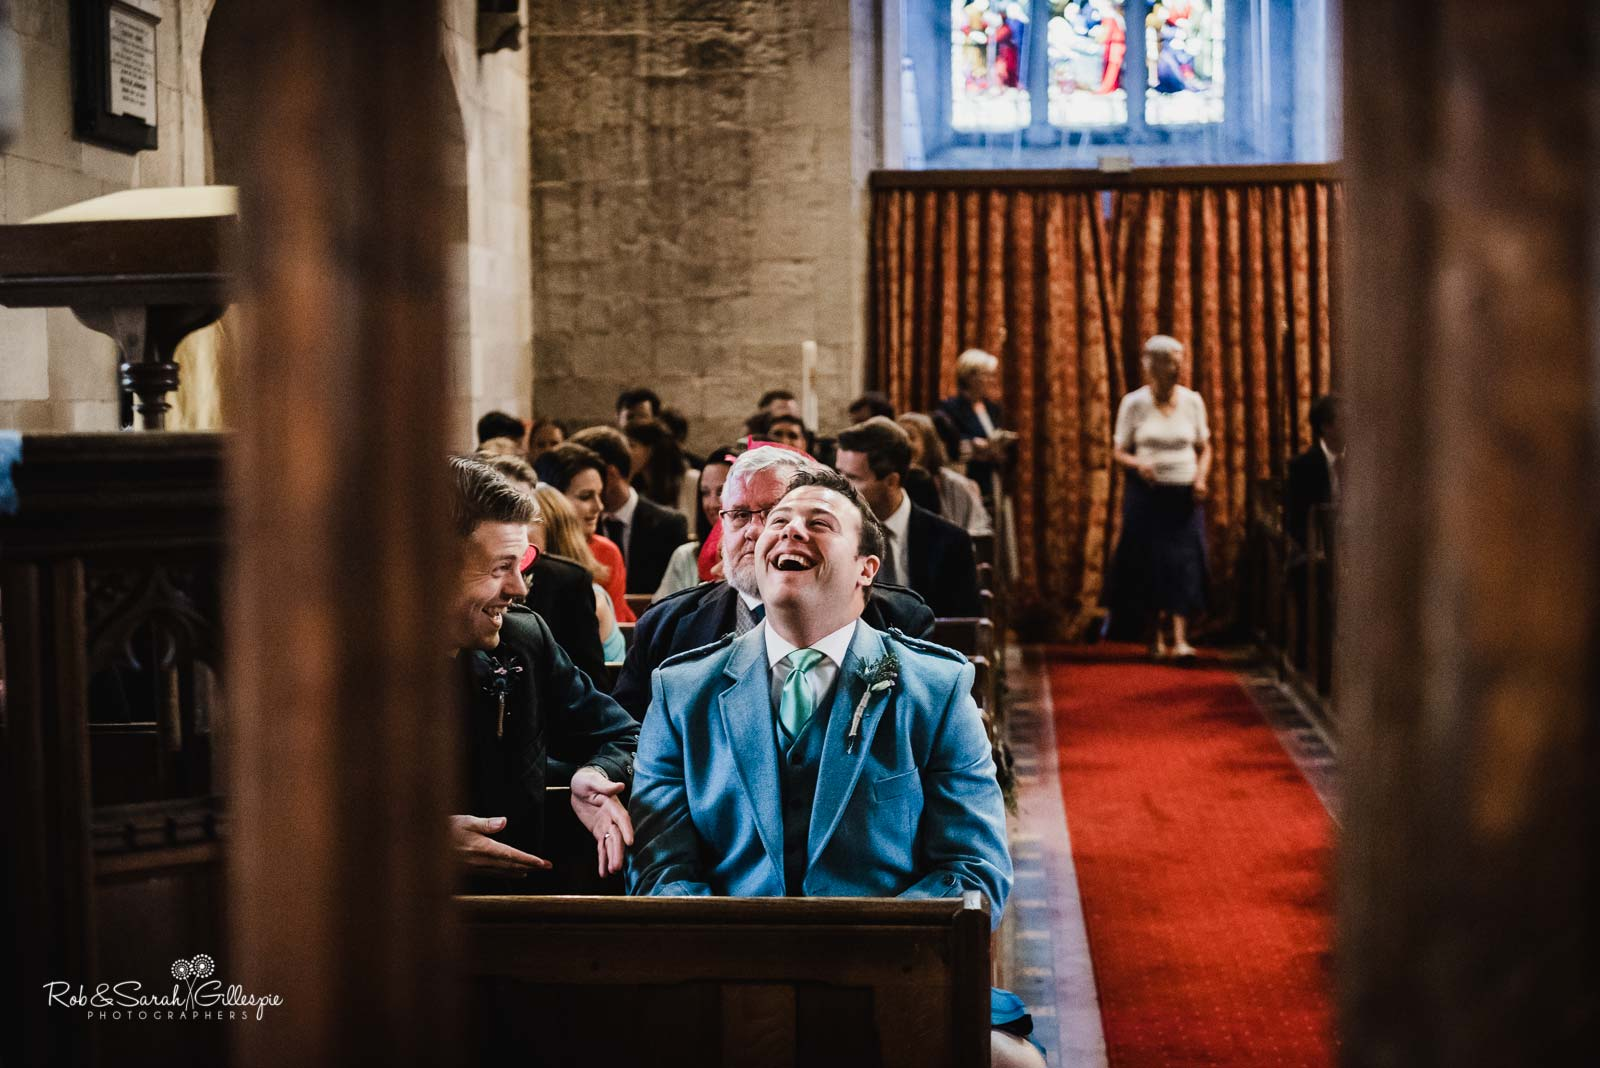 Groom laughs with friends before wedding ceremony at St Giles church Packwood